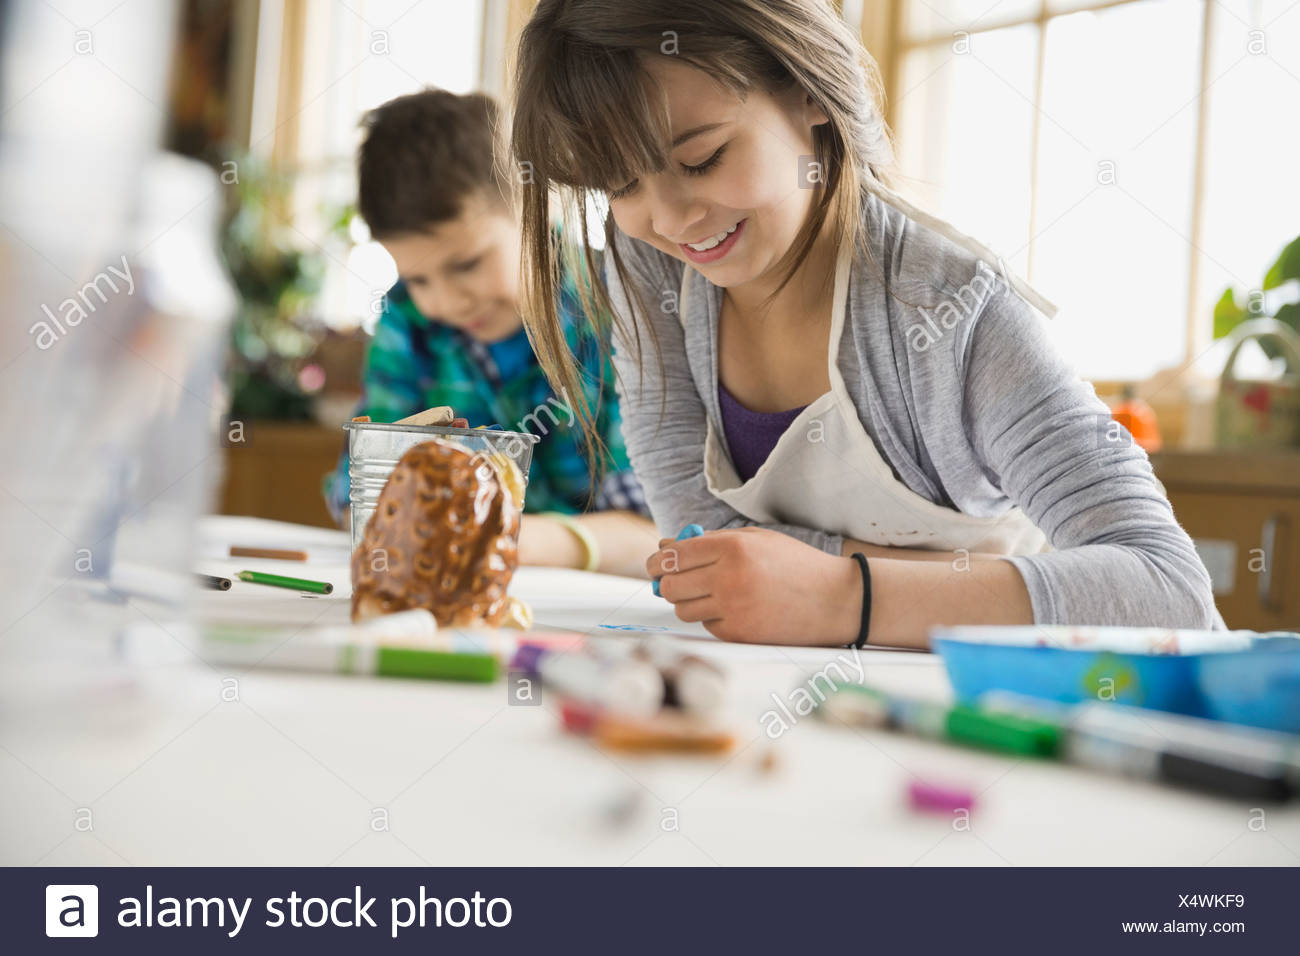 Portrait of girl drawing in art class - Stock Image